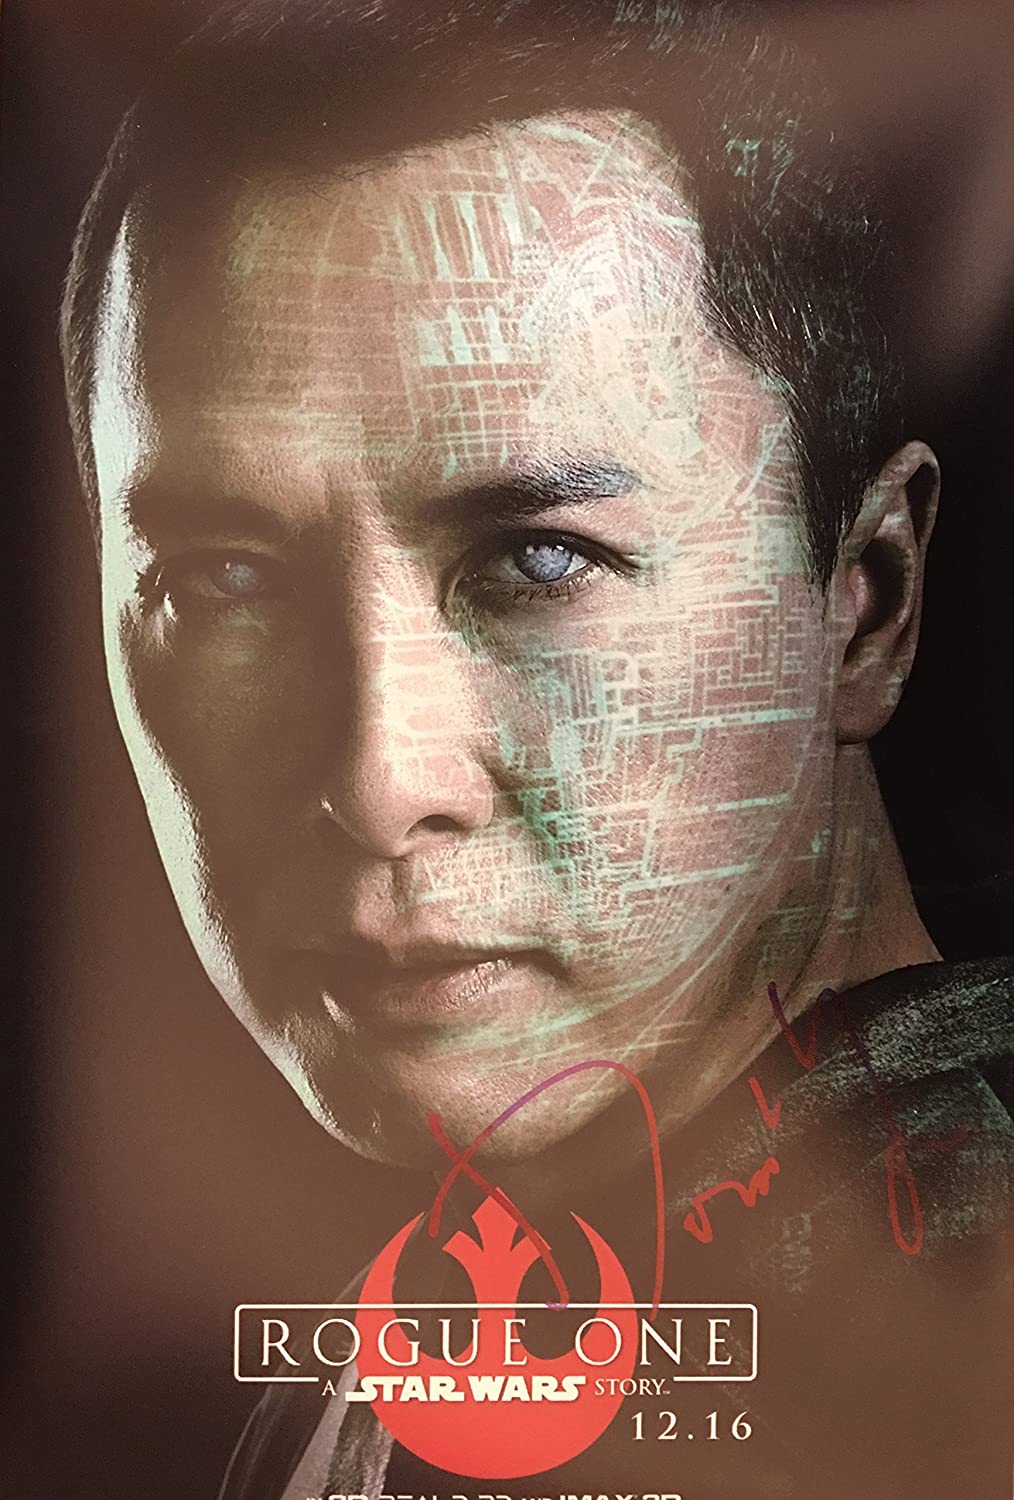 Donnie Yen unterzeichnet 35,6 x 25,4 cm Foto – Rogue One – IP-Mann – 100% Echtheit garantiert – in Person Dealer, UACC Registriert # 242